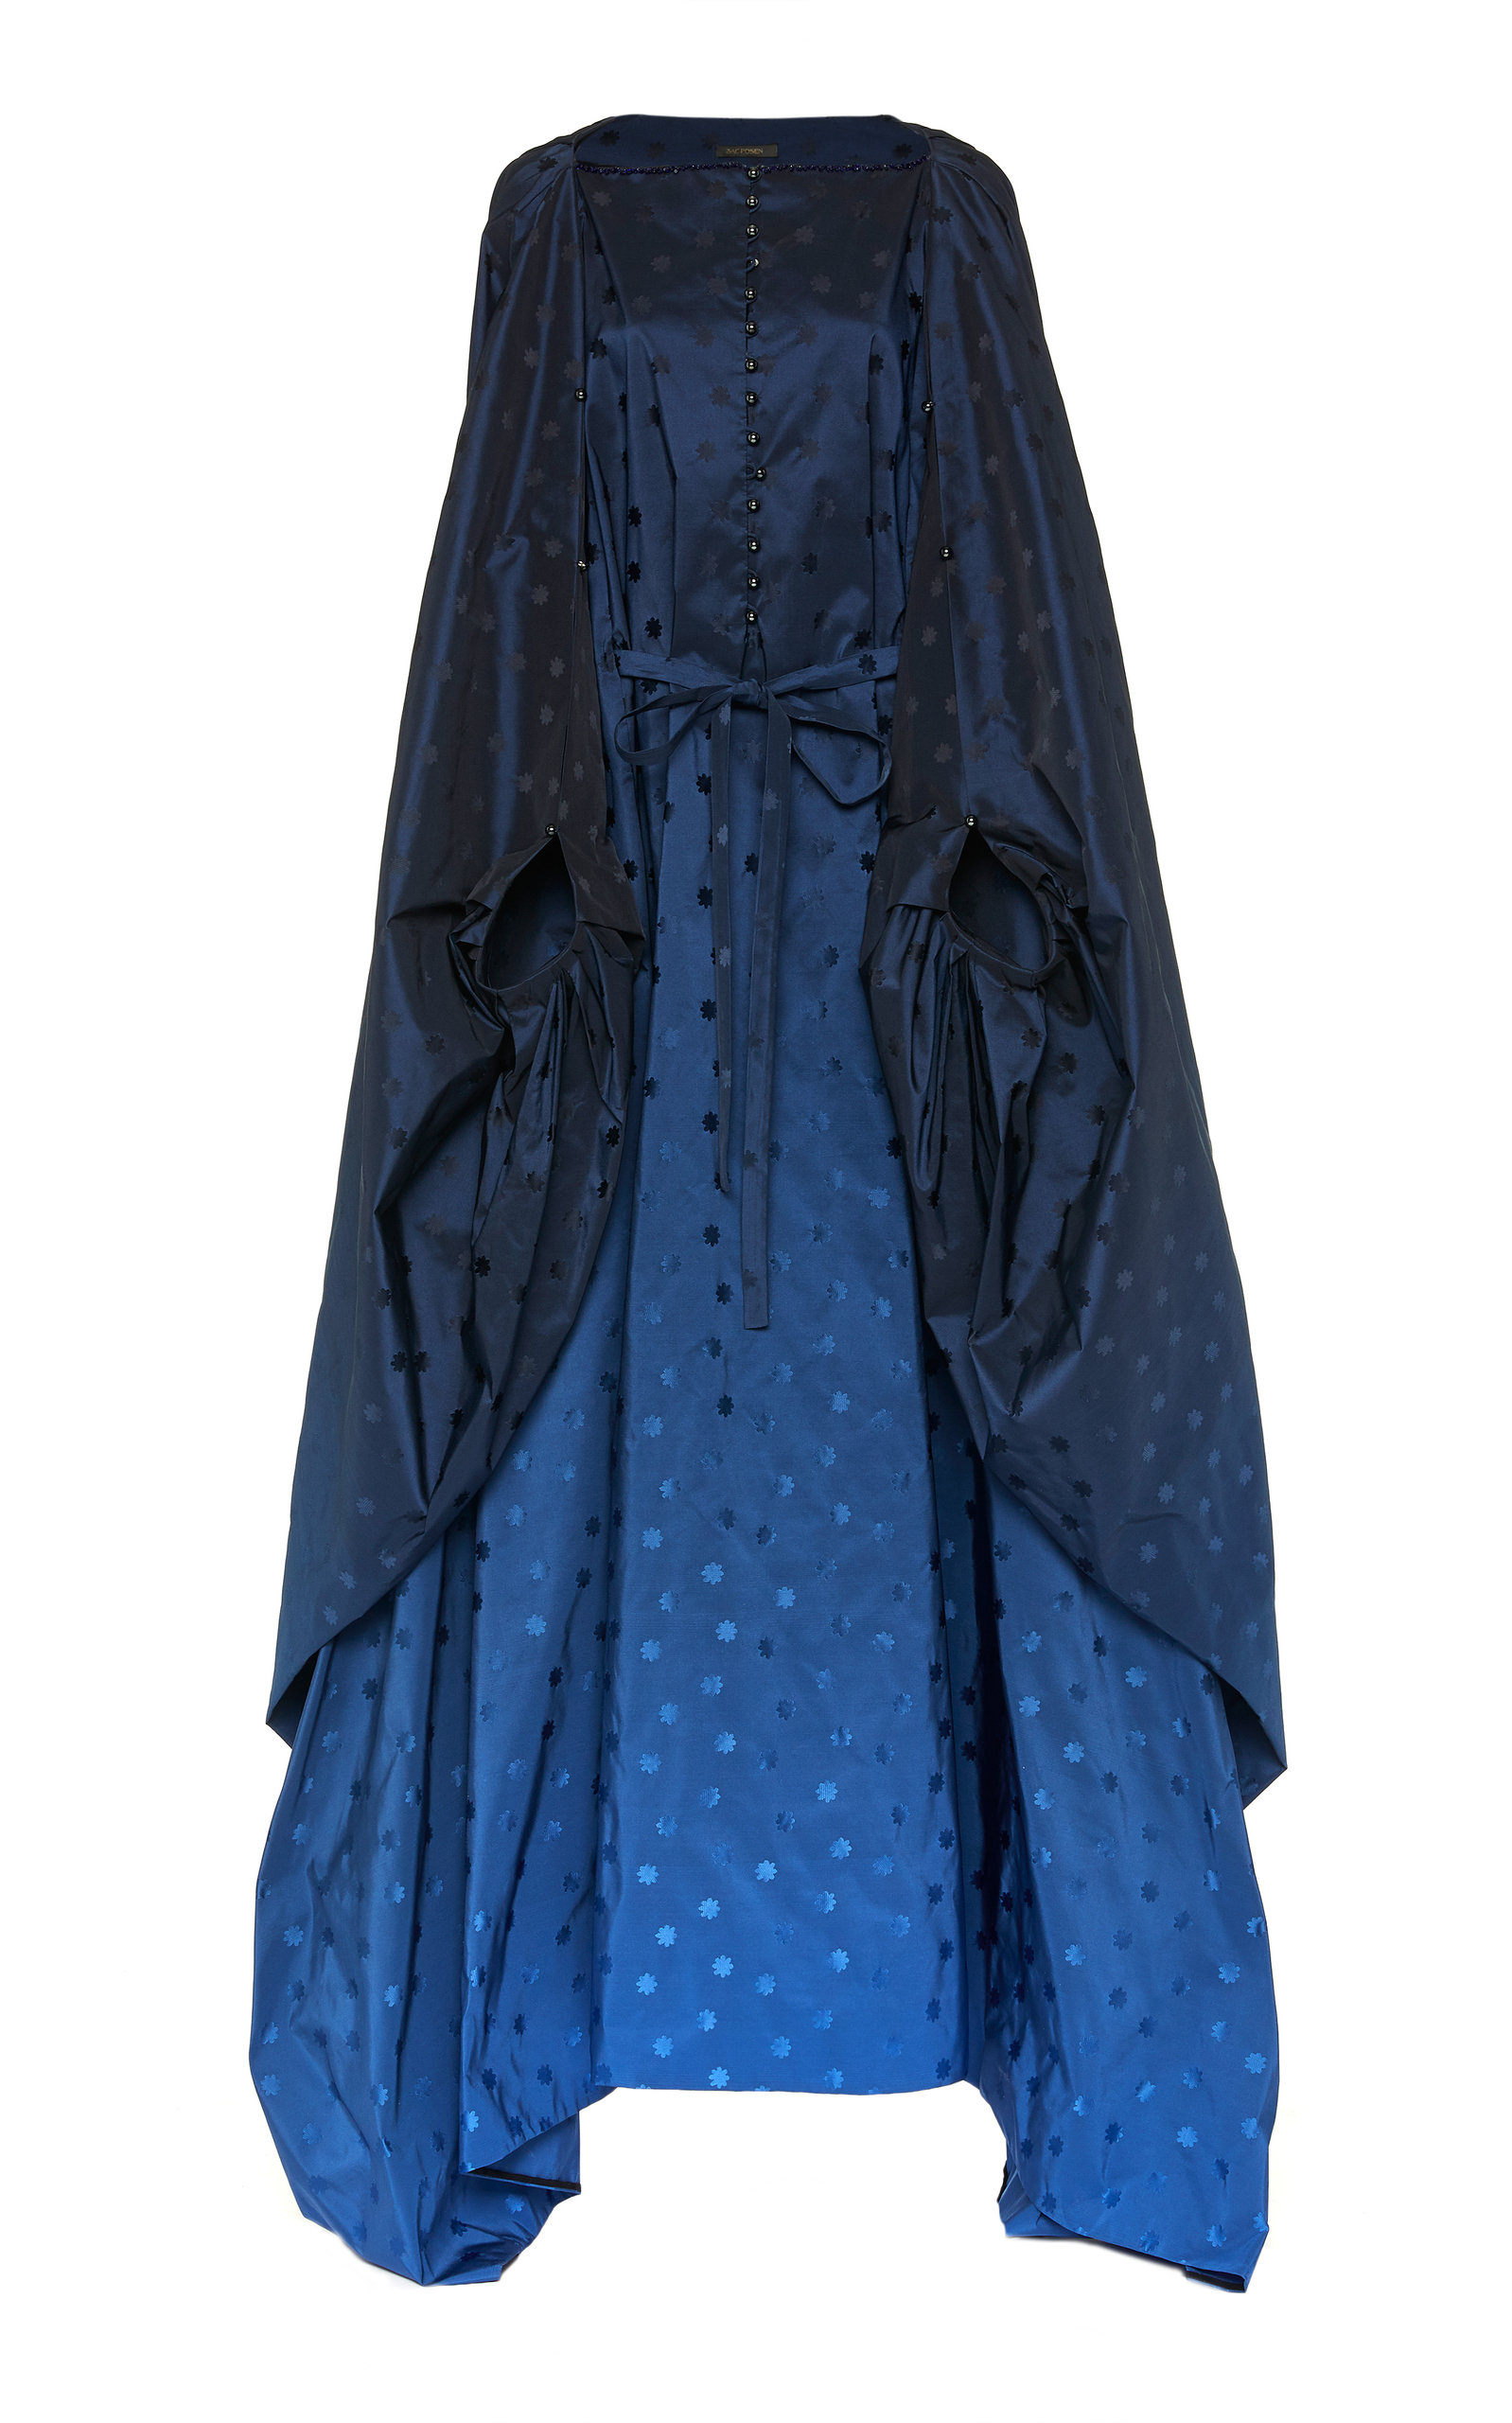 Buy Zac Posen Embroidered Ombré Dolman Sleeve Gown online, shop Zac Posen at the best price